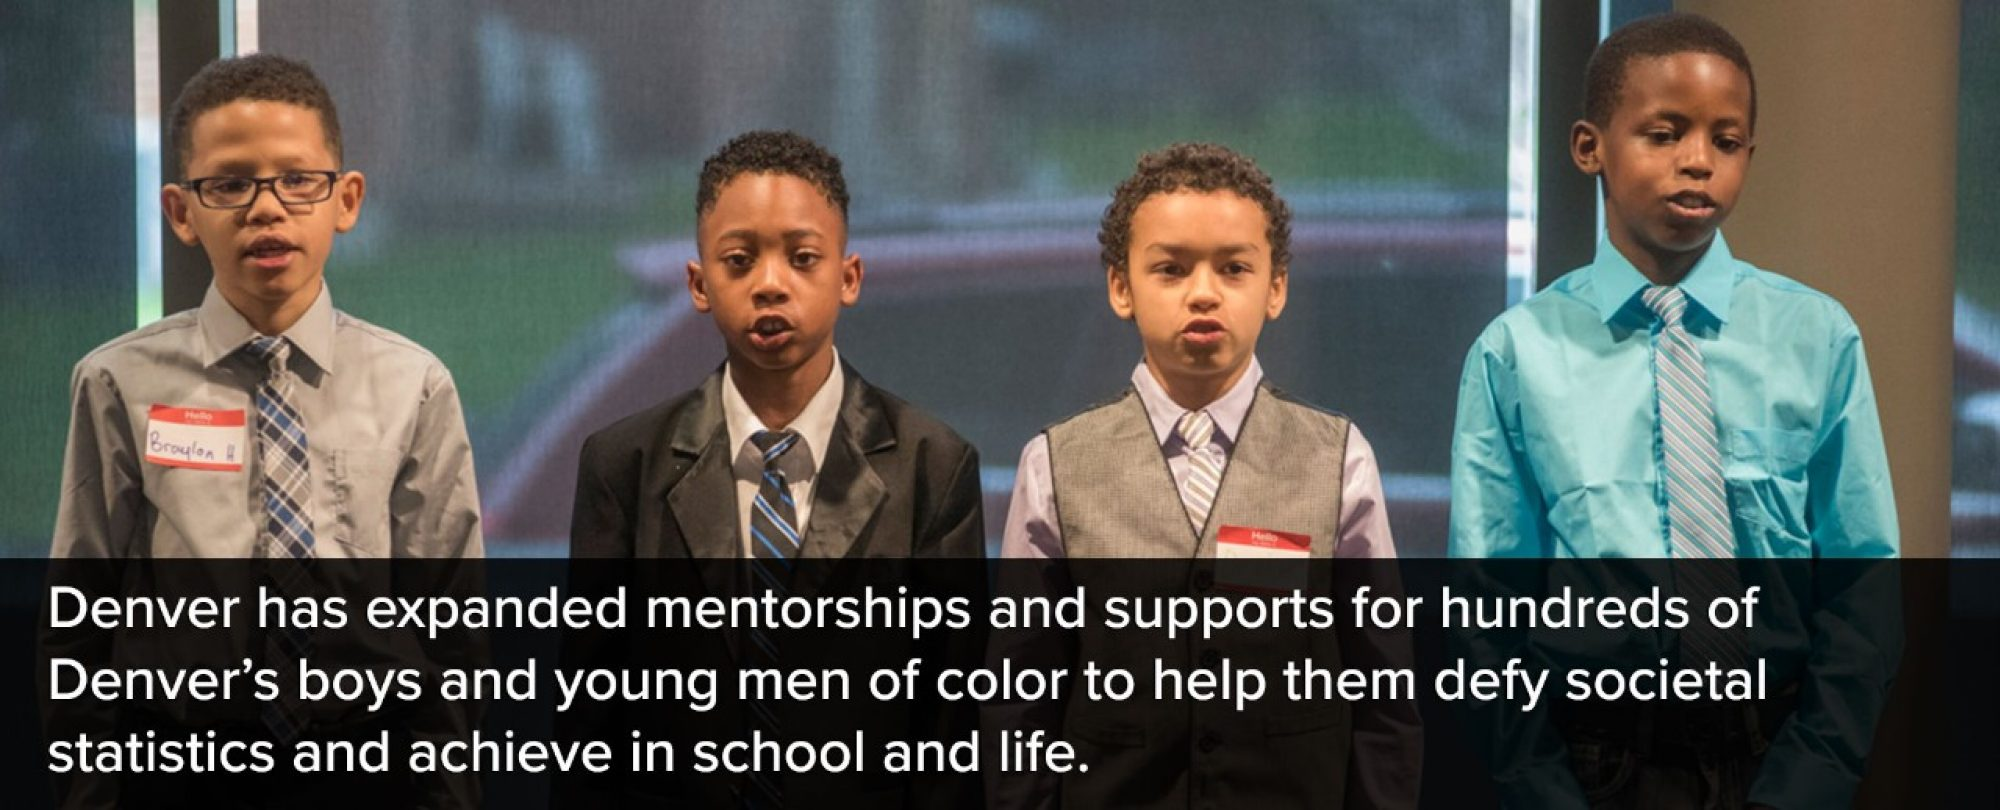 Photo of young men together for the My Brother's Keeper program. Denver has expanded mentorships and support for hundreds of Denver's boys and young men of color to help them defy societal statistics and achieve in school and life